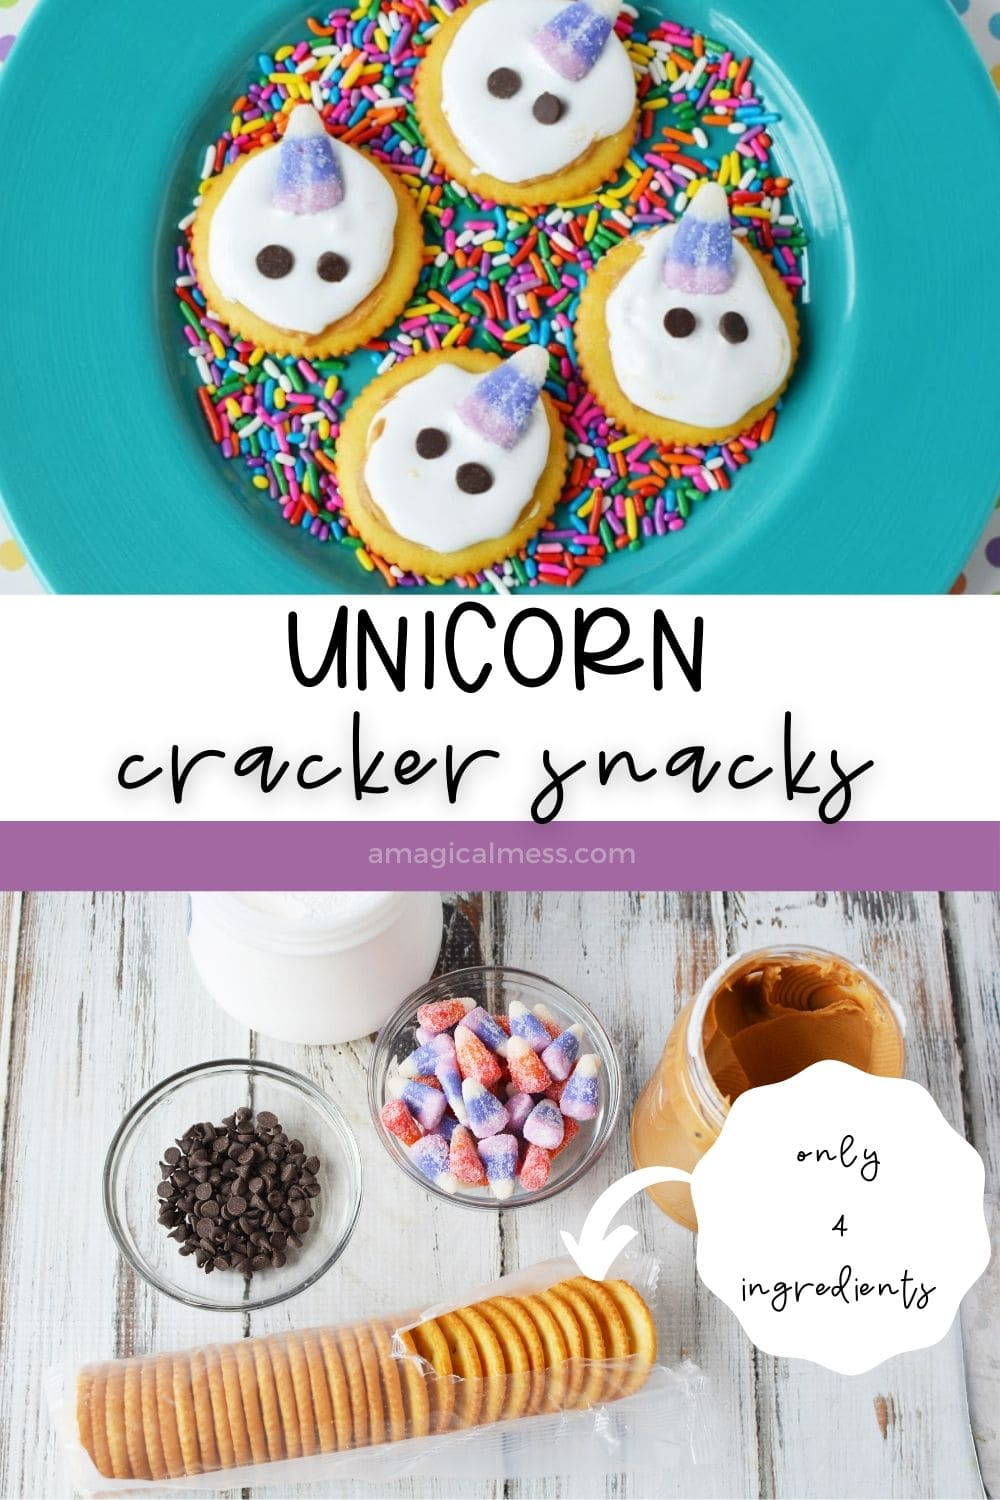 plate of unicorn crackers and ingredients